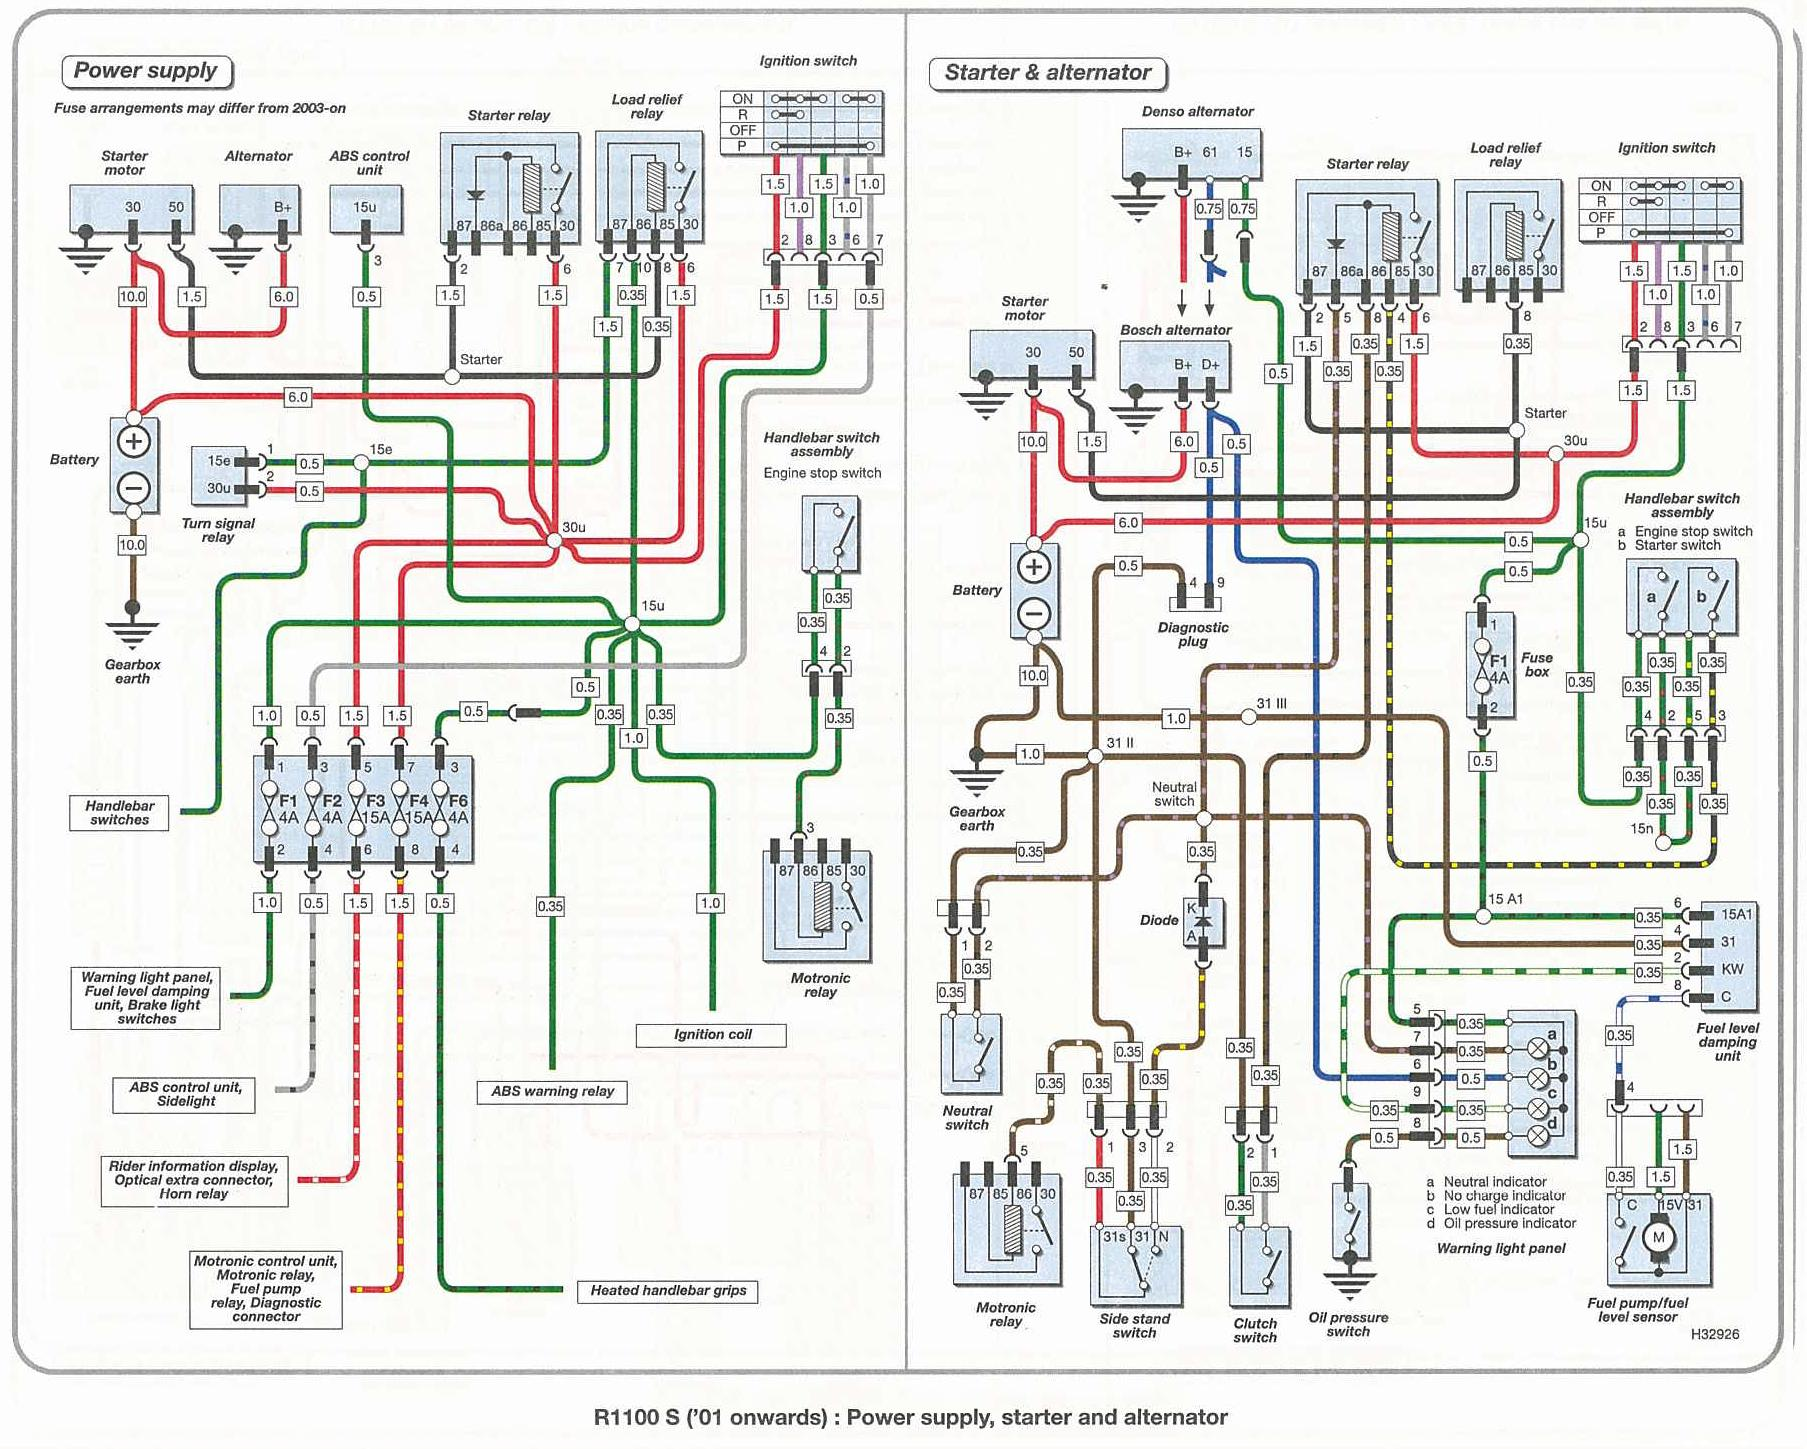 Ford Windstar 2001 Inside Fuse Boxblock Circuit Breaker Diagram also P3 Installation moreover Benelli  ponents moreover Wiring Diagrams Peugeot in addition PBU COOL STUFF. on aprilia wiring diagram